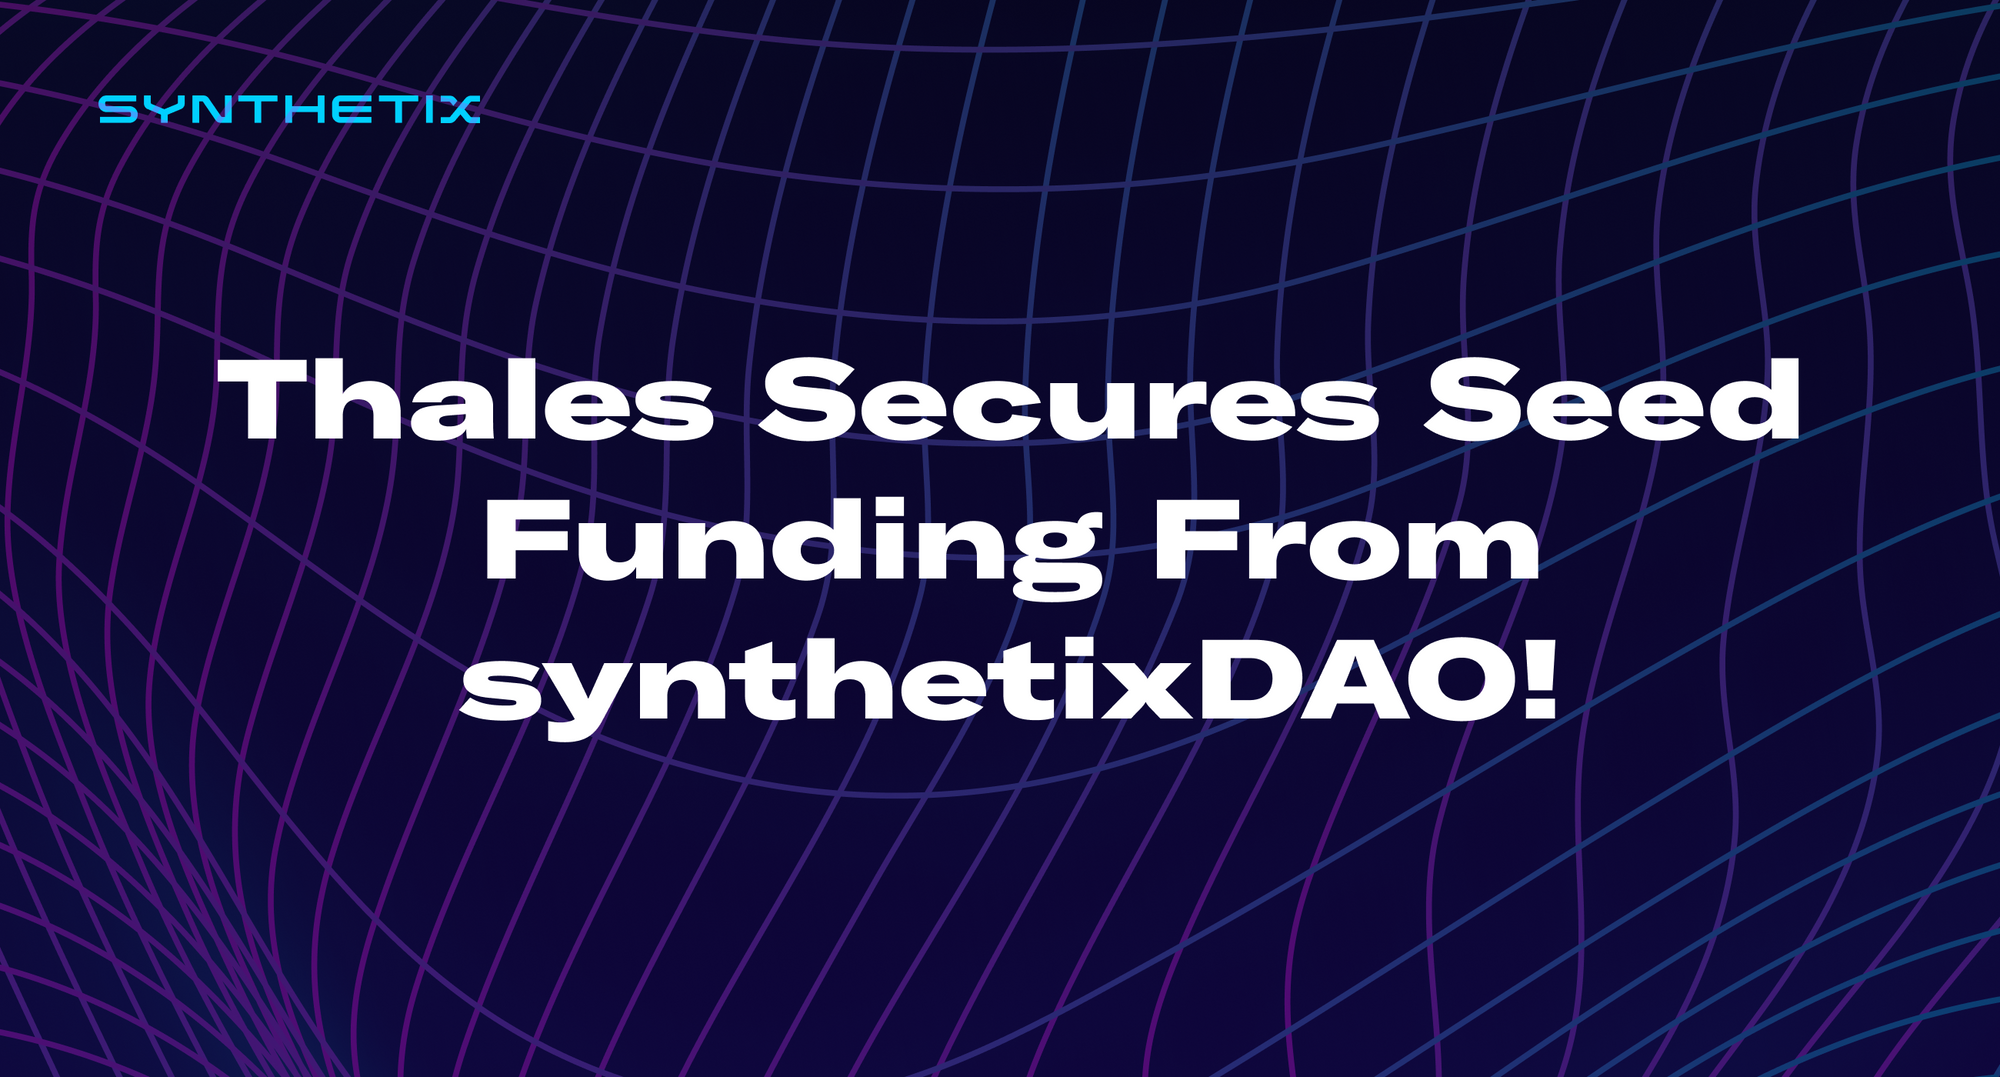 Thales Secures Seed Funding From synthetixDAO!